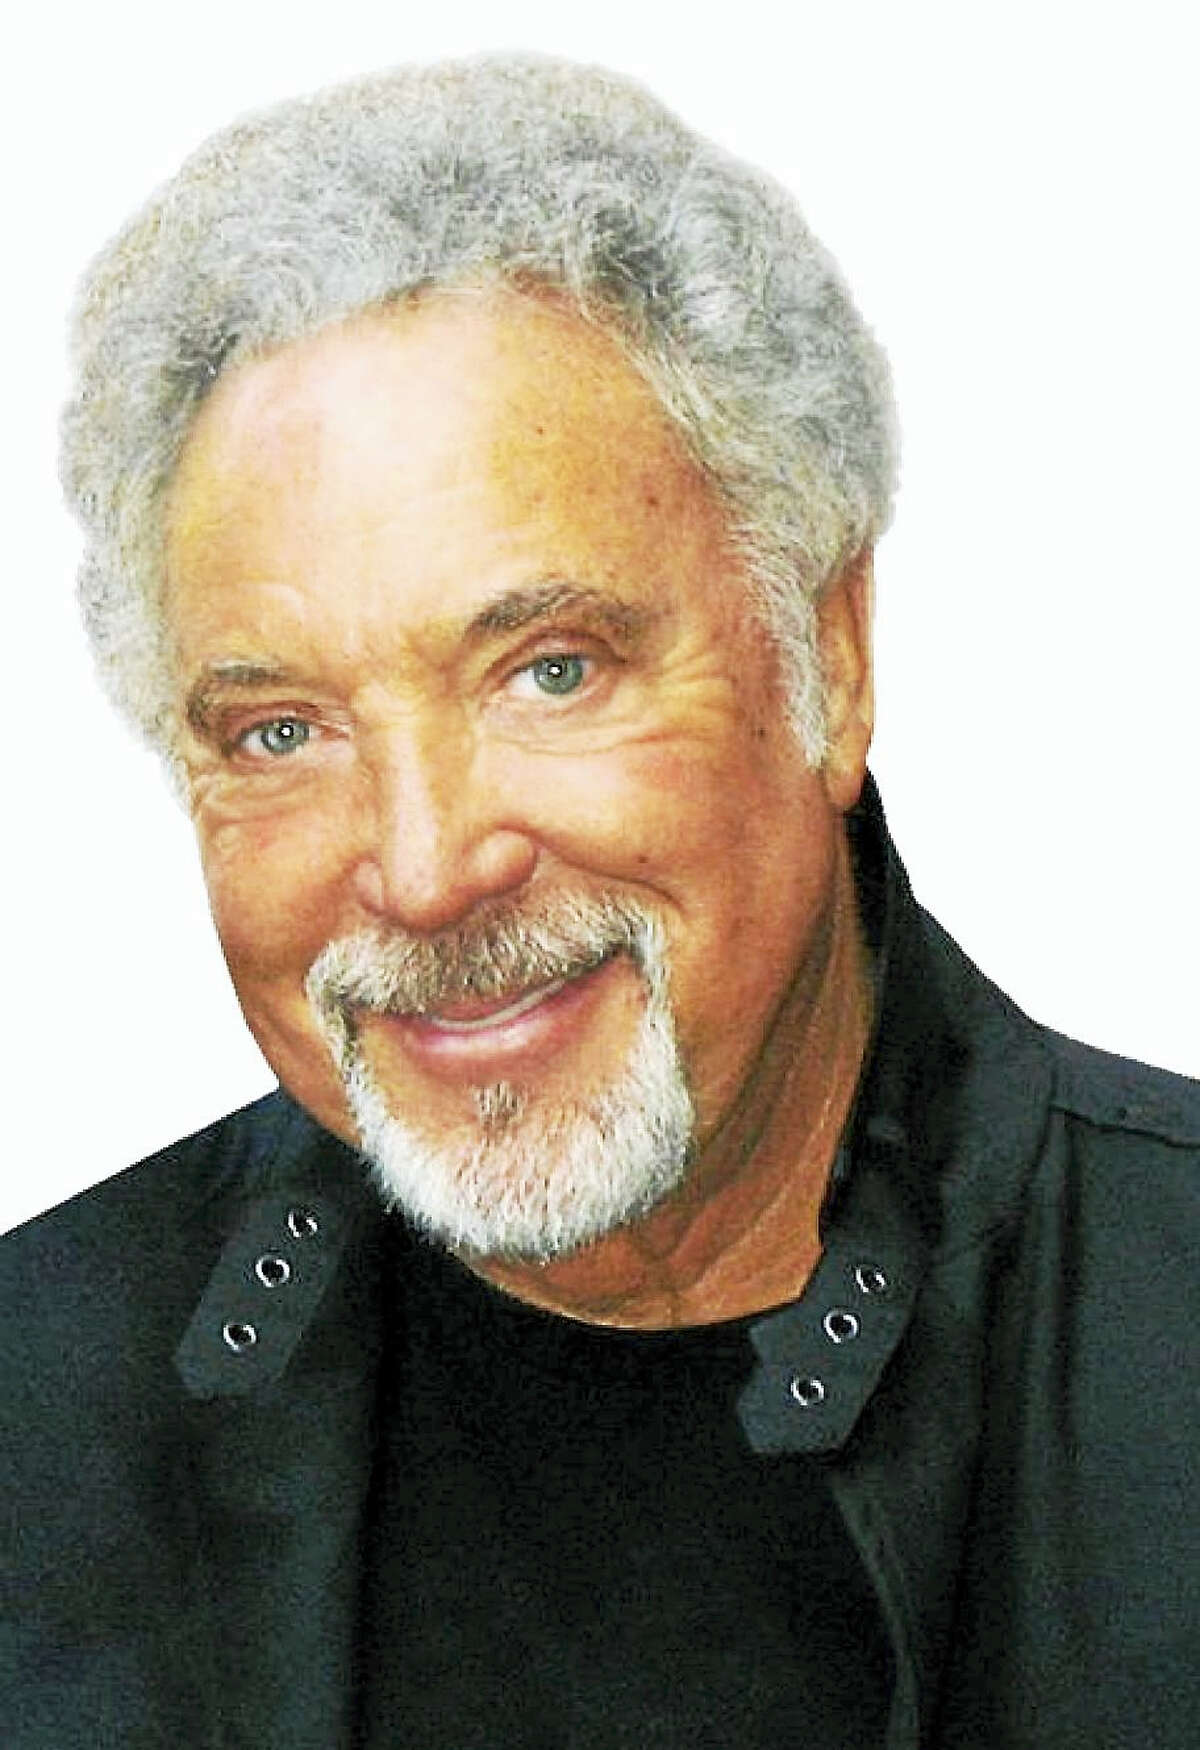 Contributed photoVocalist Tom Jones is set to perform at the Grand Theater located inside of the Foxwoods Resort Casino on Sept. 9.